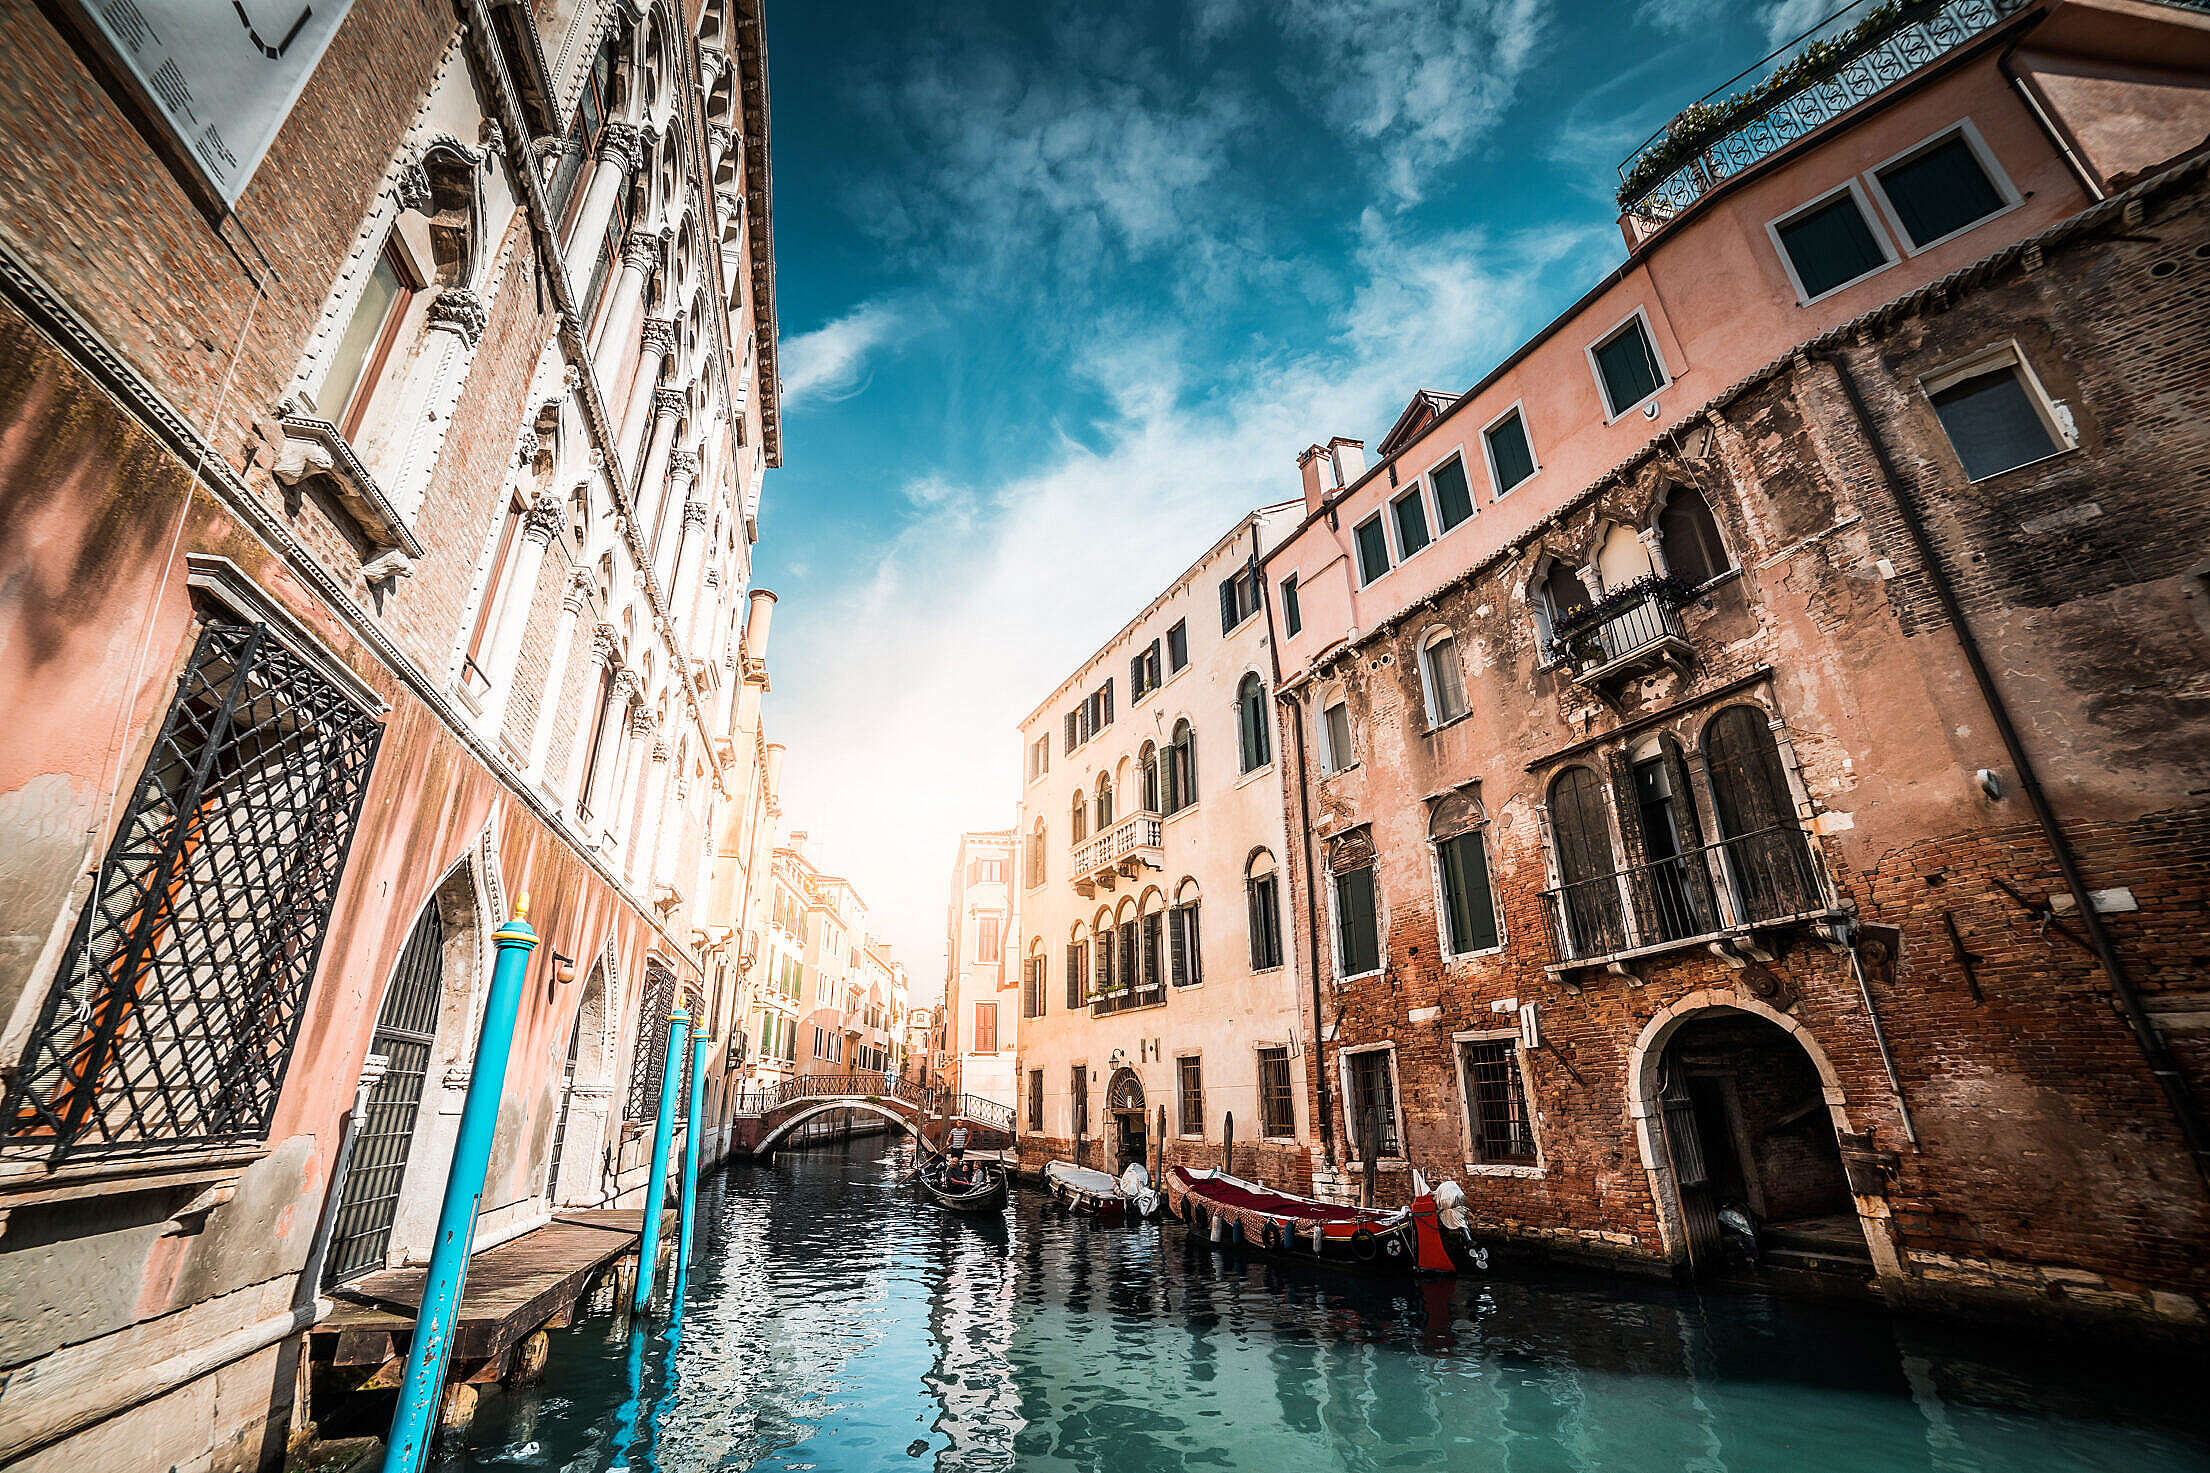 Wonderful Canals in Venice, Italy Free Stock Photo